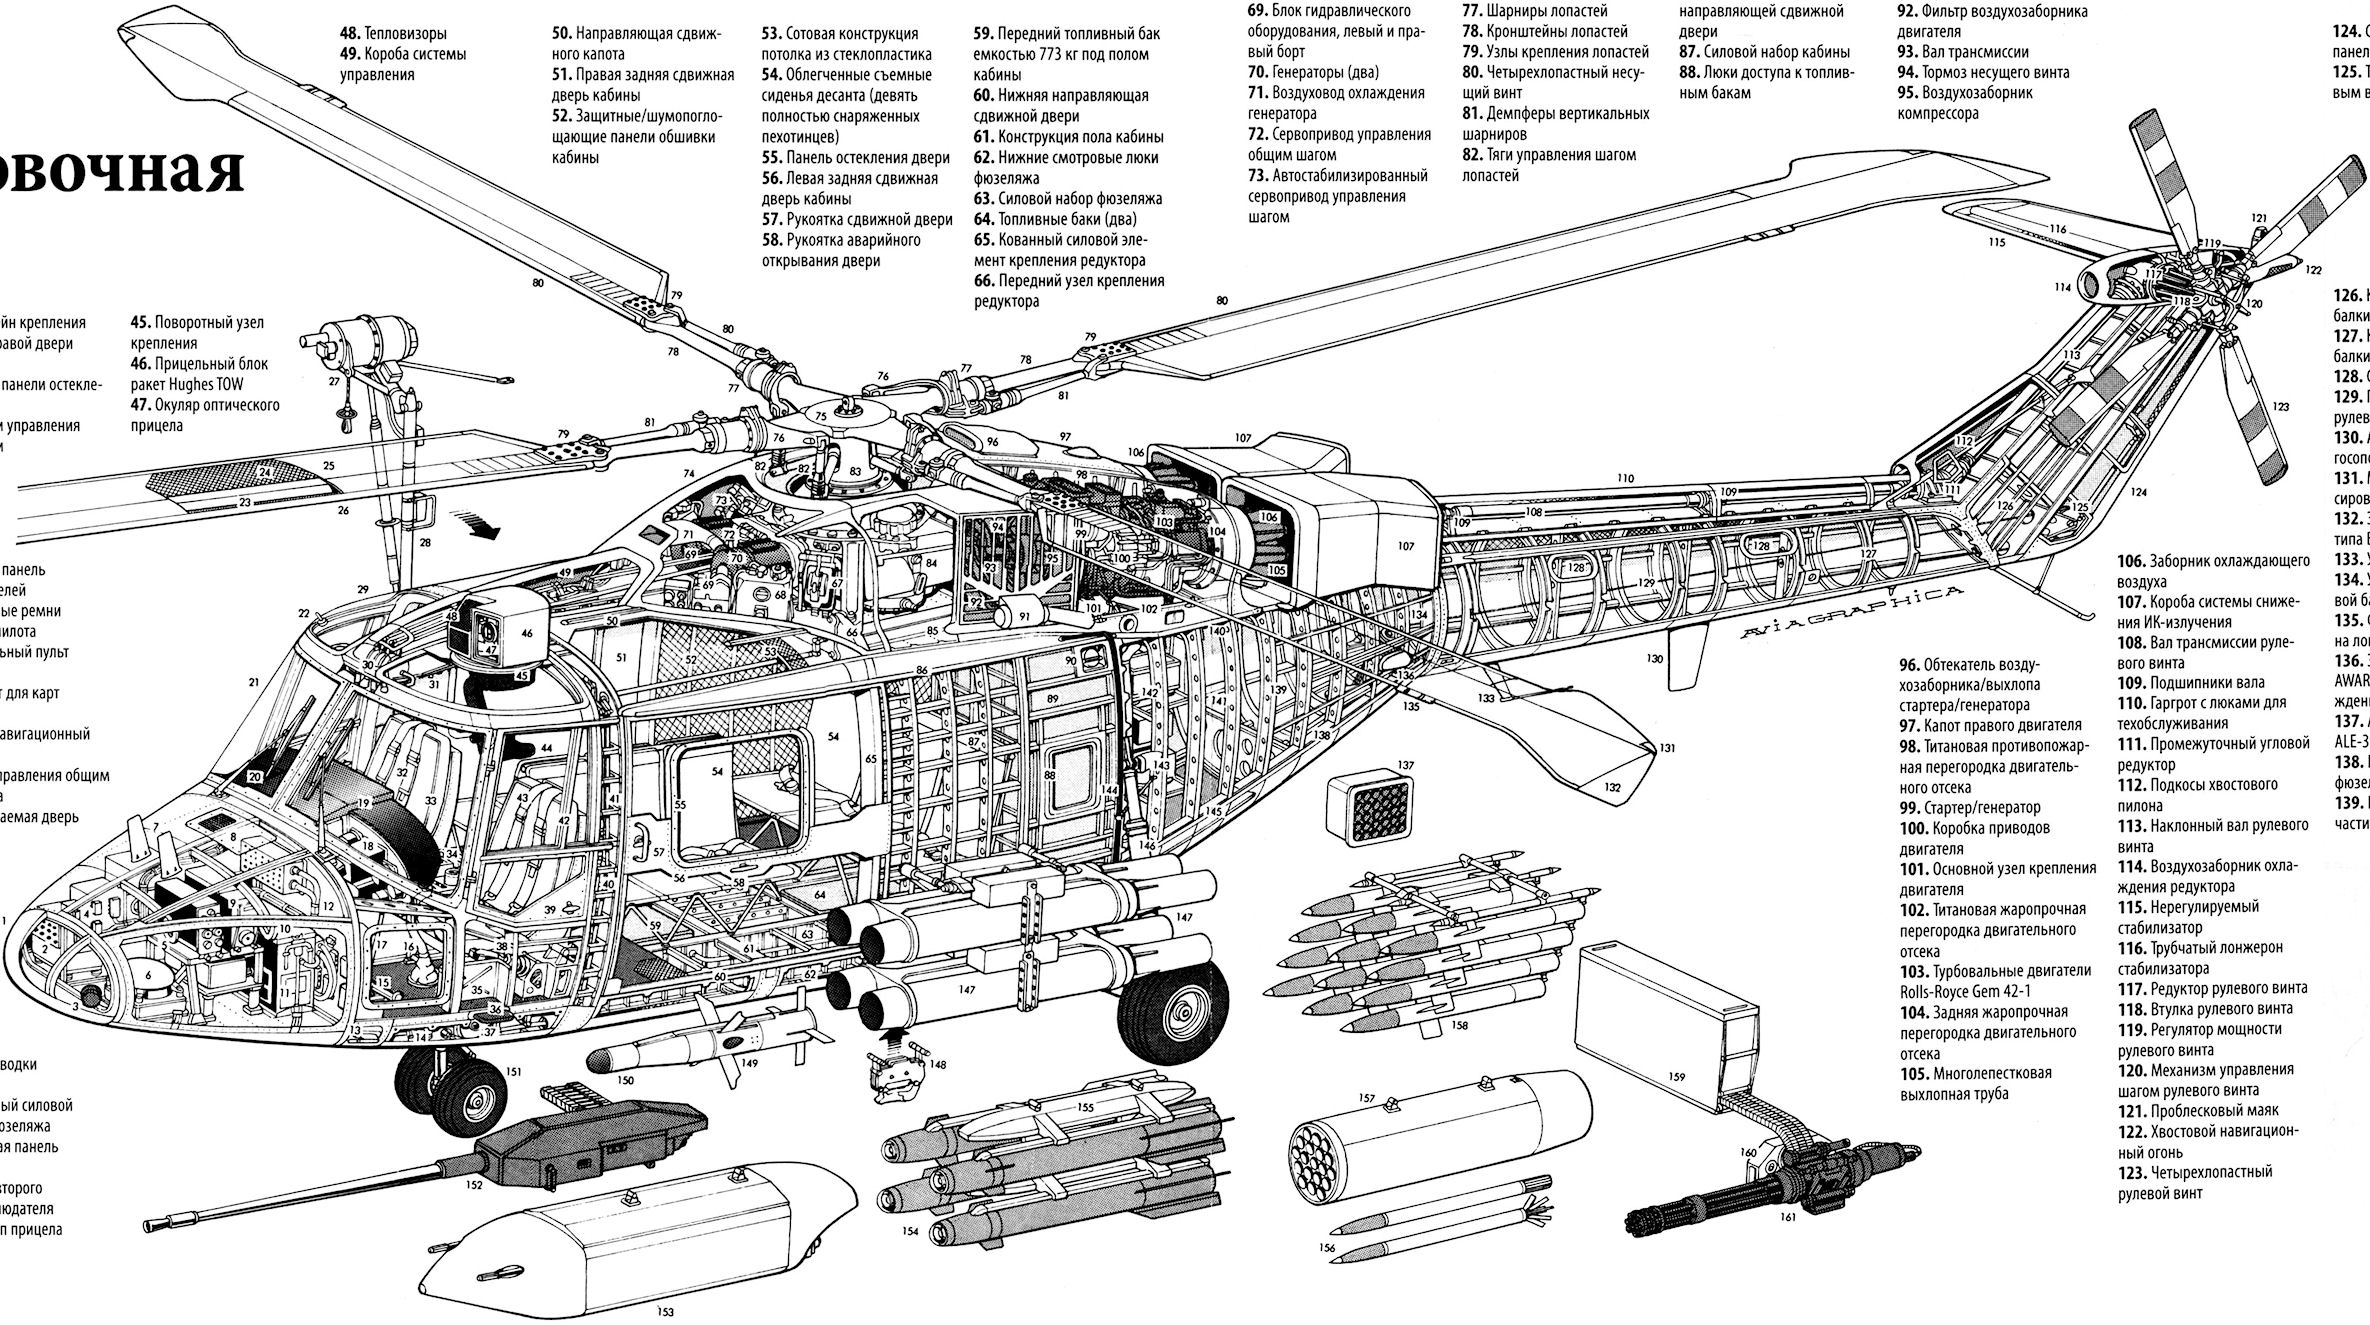 apache helicopter for sale with Showthread on Photos That Inspired The Good Jihadist in addition Mig 25r Foxbat further Ah 64 Apache Blueprint Art as well Psa Cheap Toys For Boys together with H48nr2006.